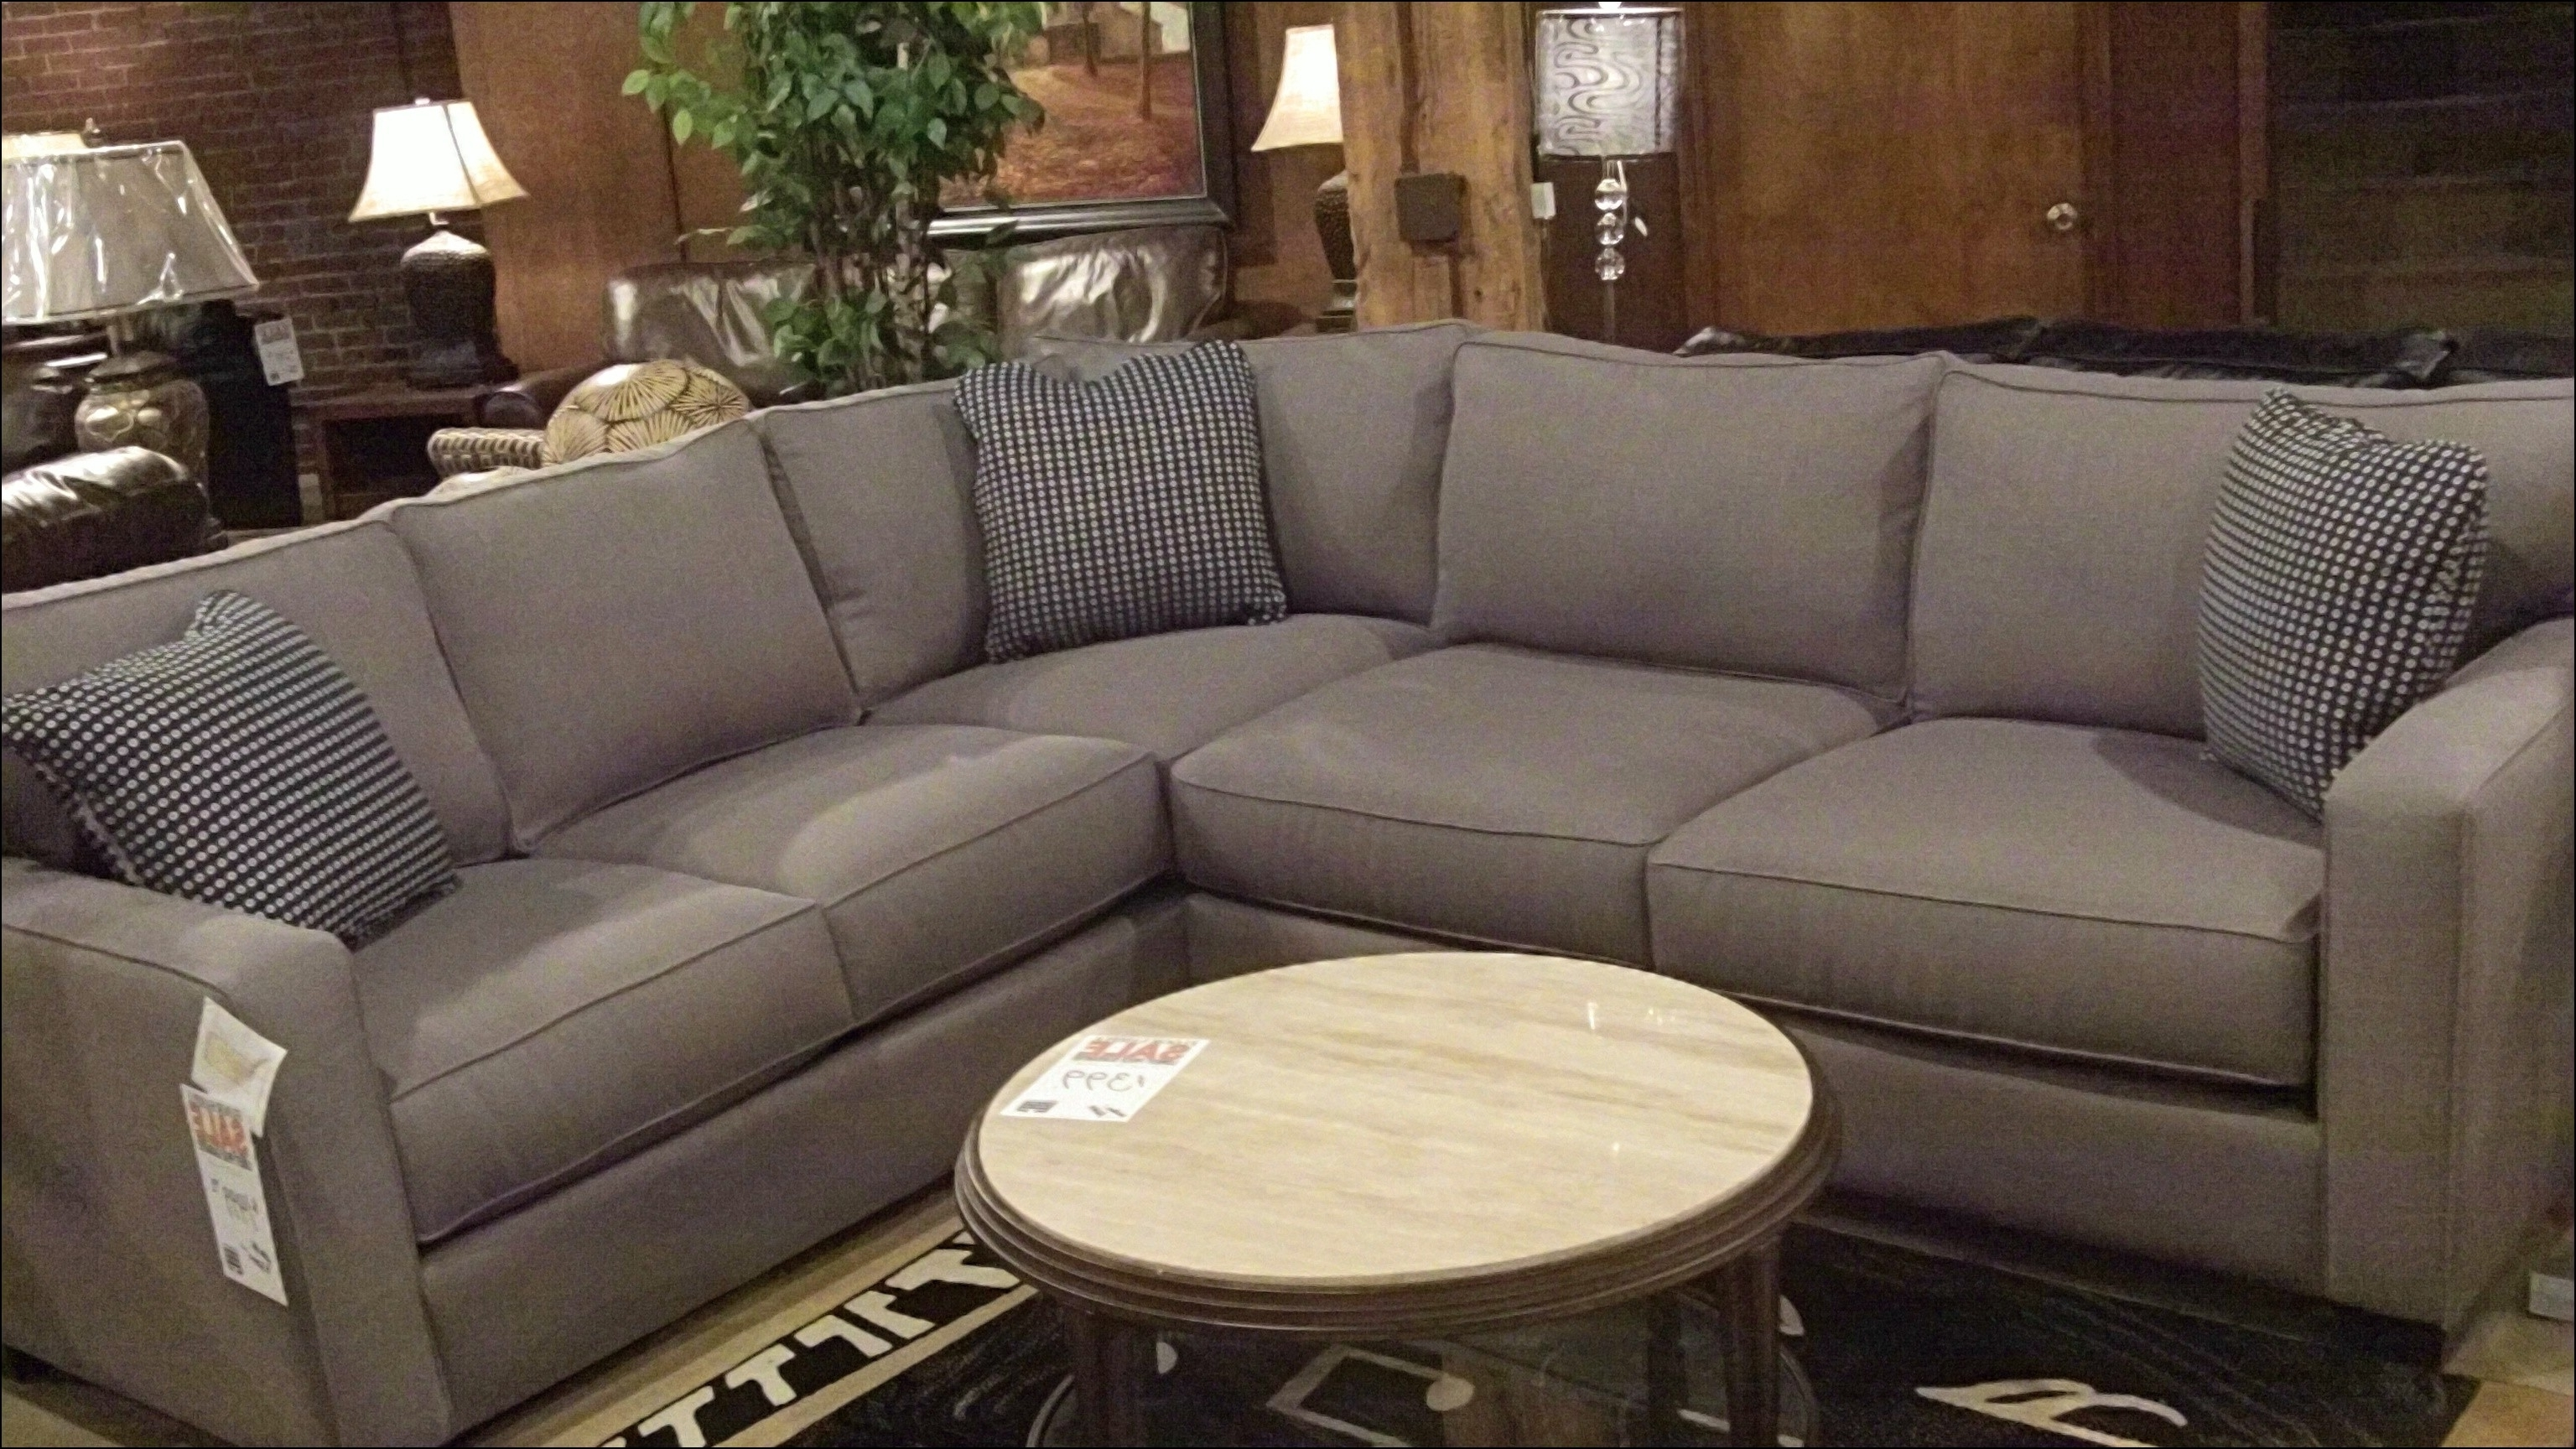 Tulsa Sectional Sofas In Famous Stylish Sectional Sofas Tulsa Ok – Buildsimplehome (View 9 of 15)